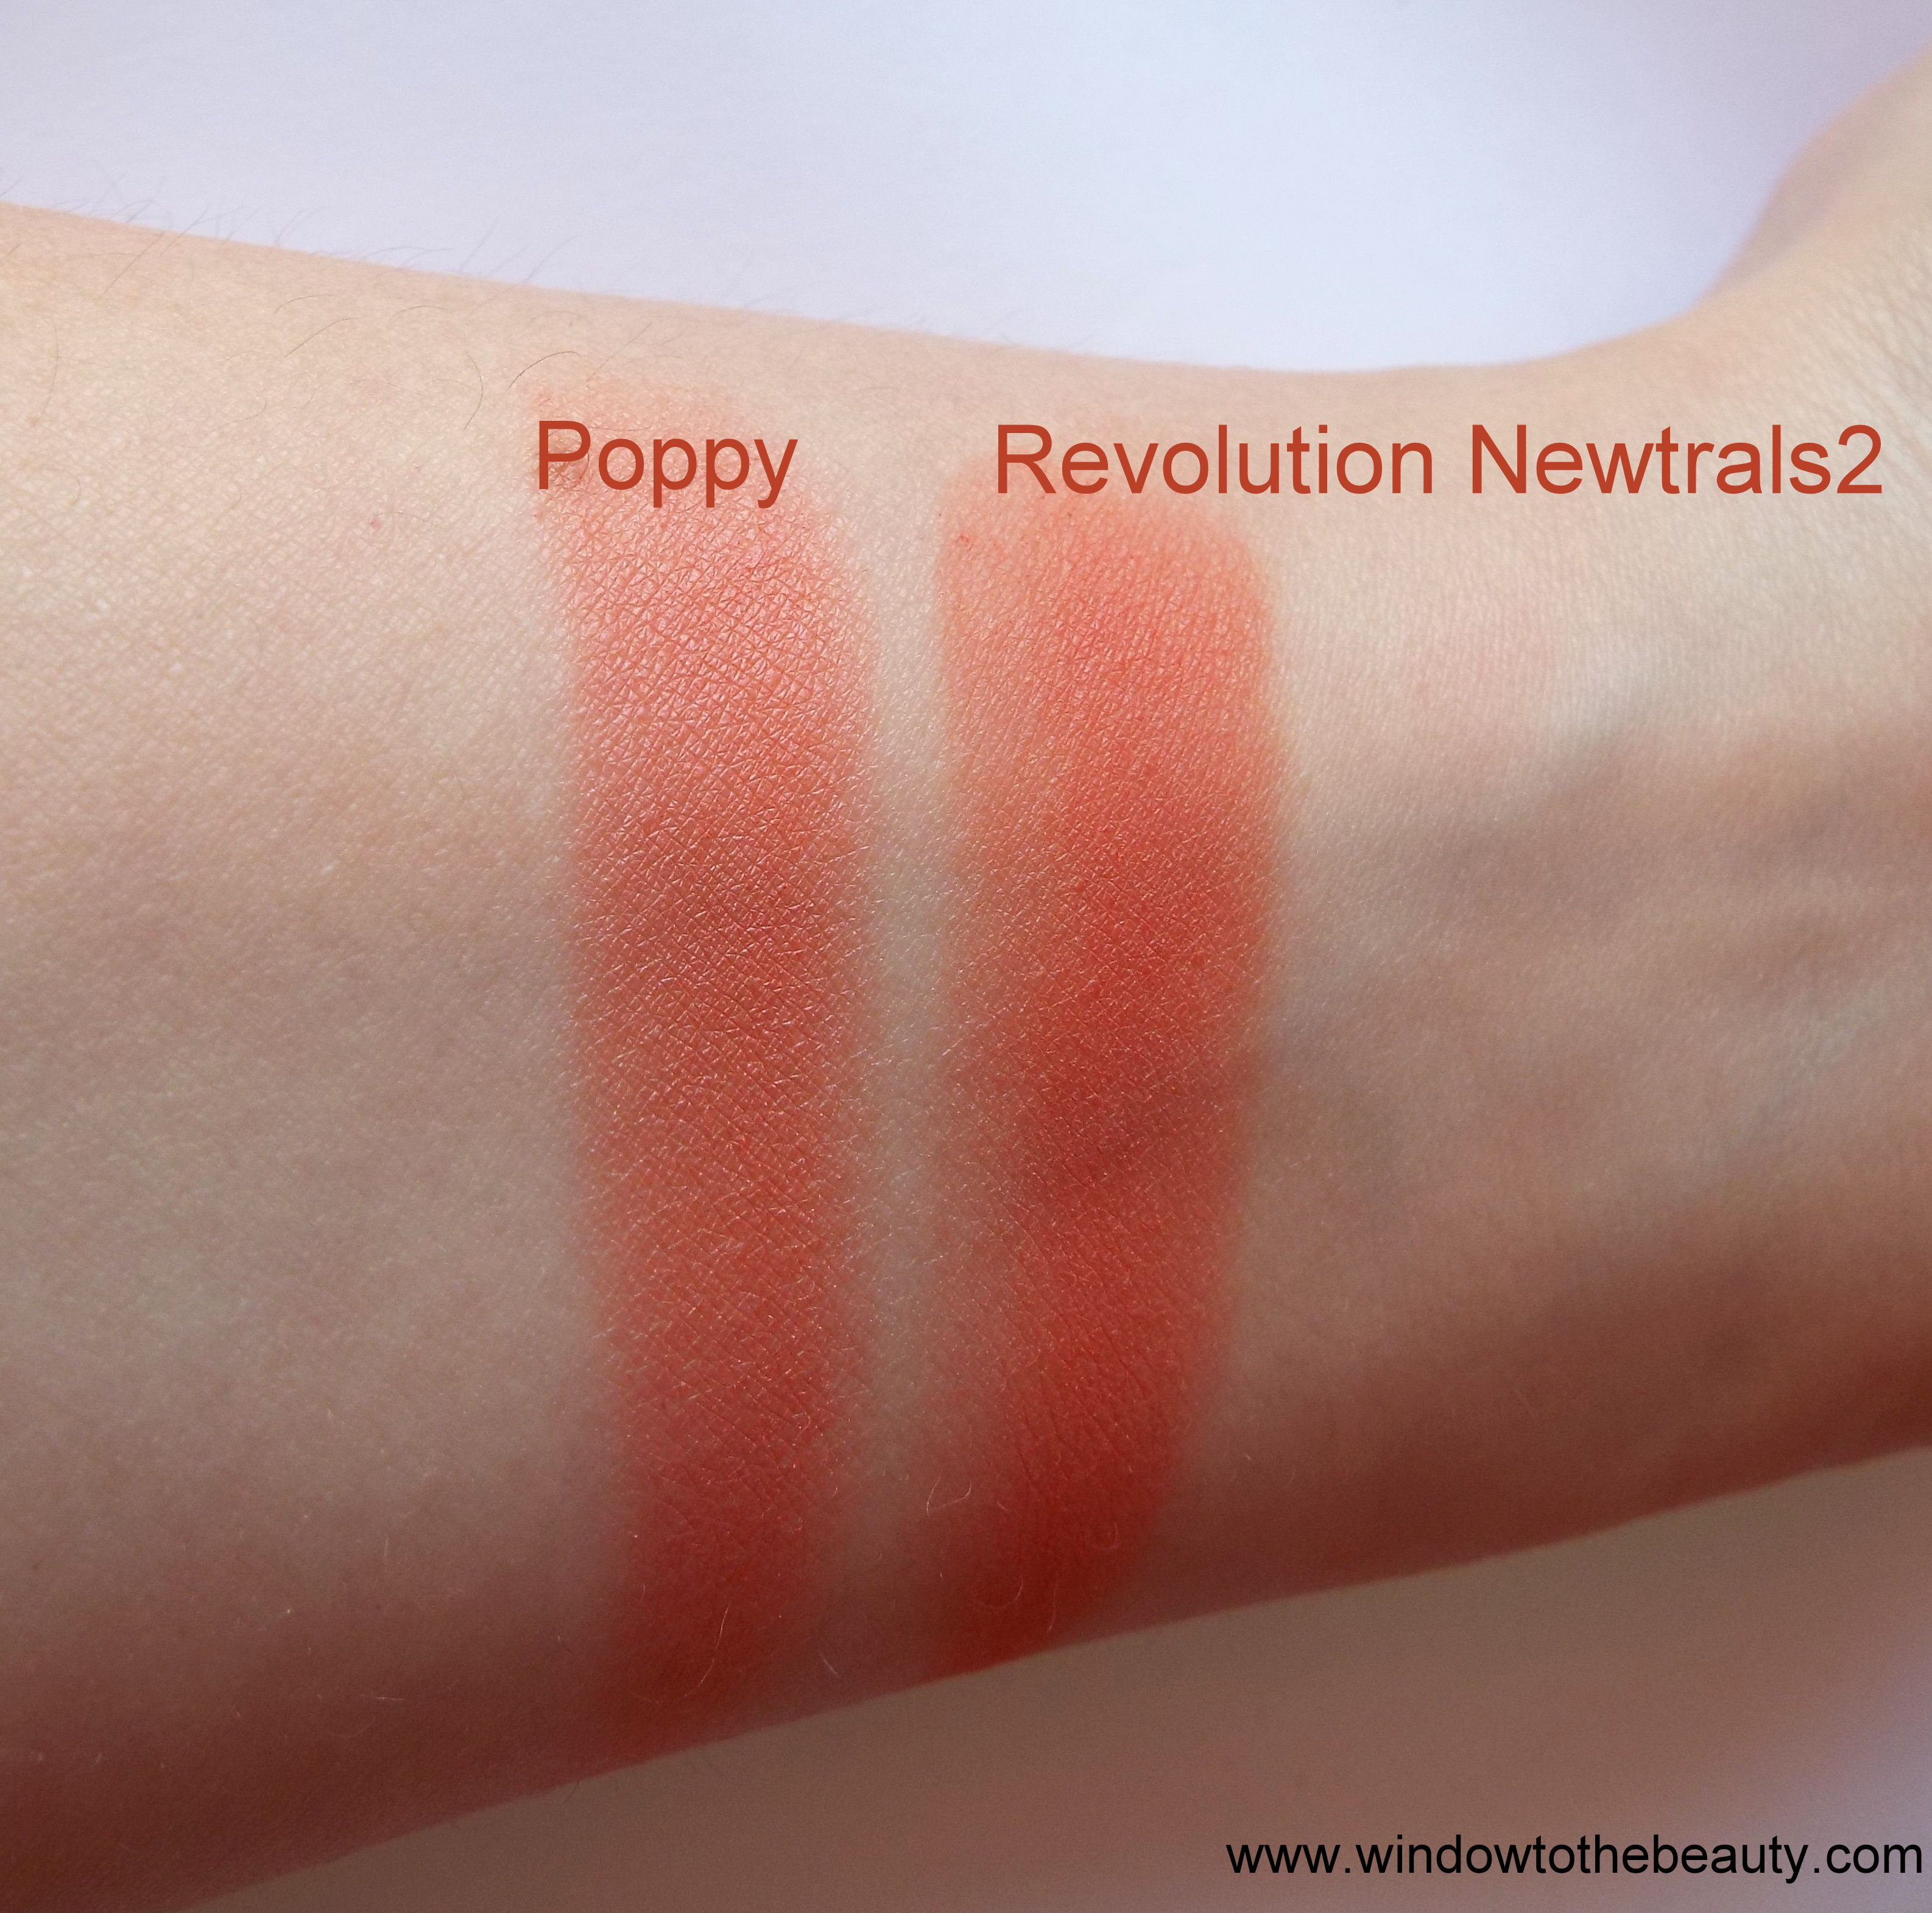 Makeup Geek Poppy Dupe Makeup Geek Dupes Makeup